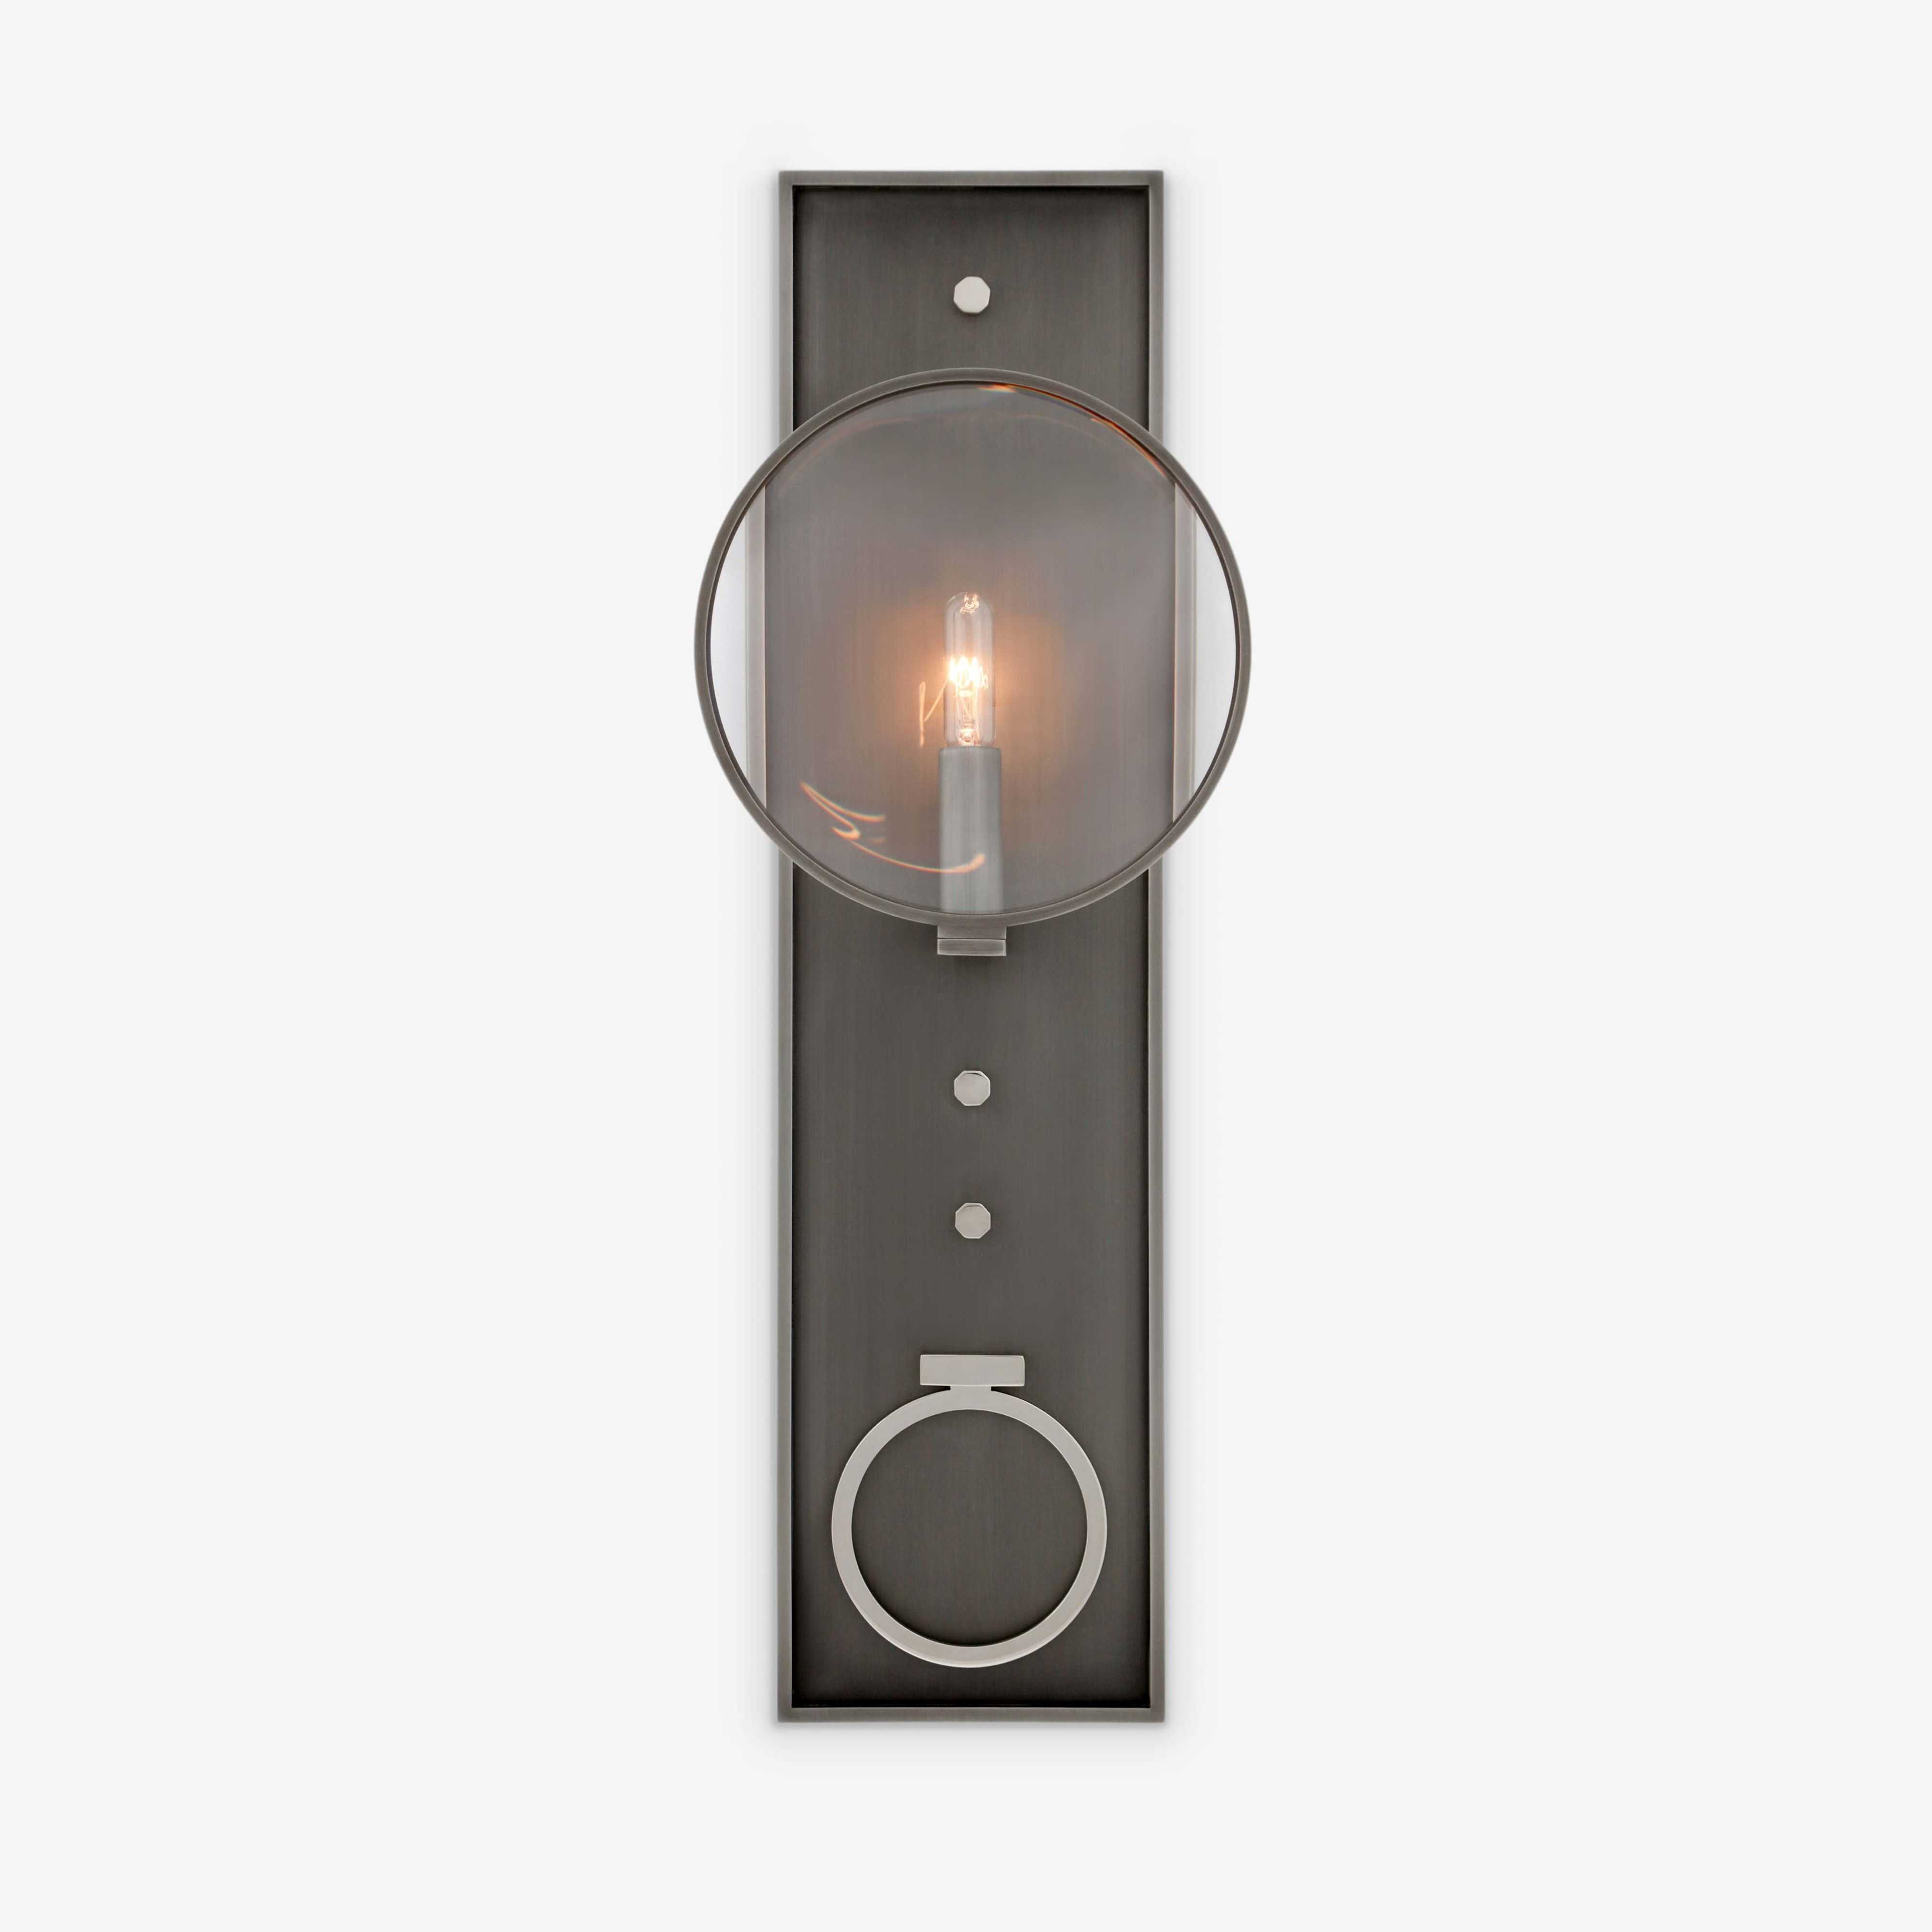 shop the charlotte wall sconce designed by taylor howes this sconce rh pinterest com